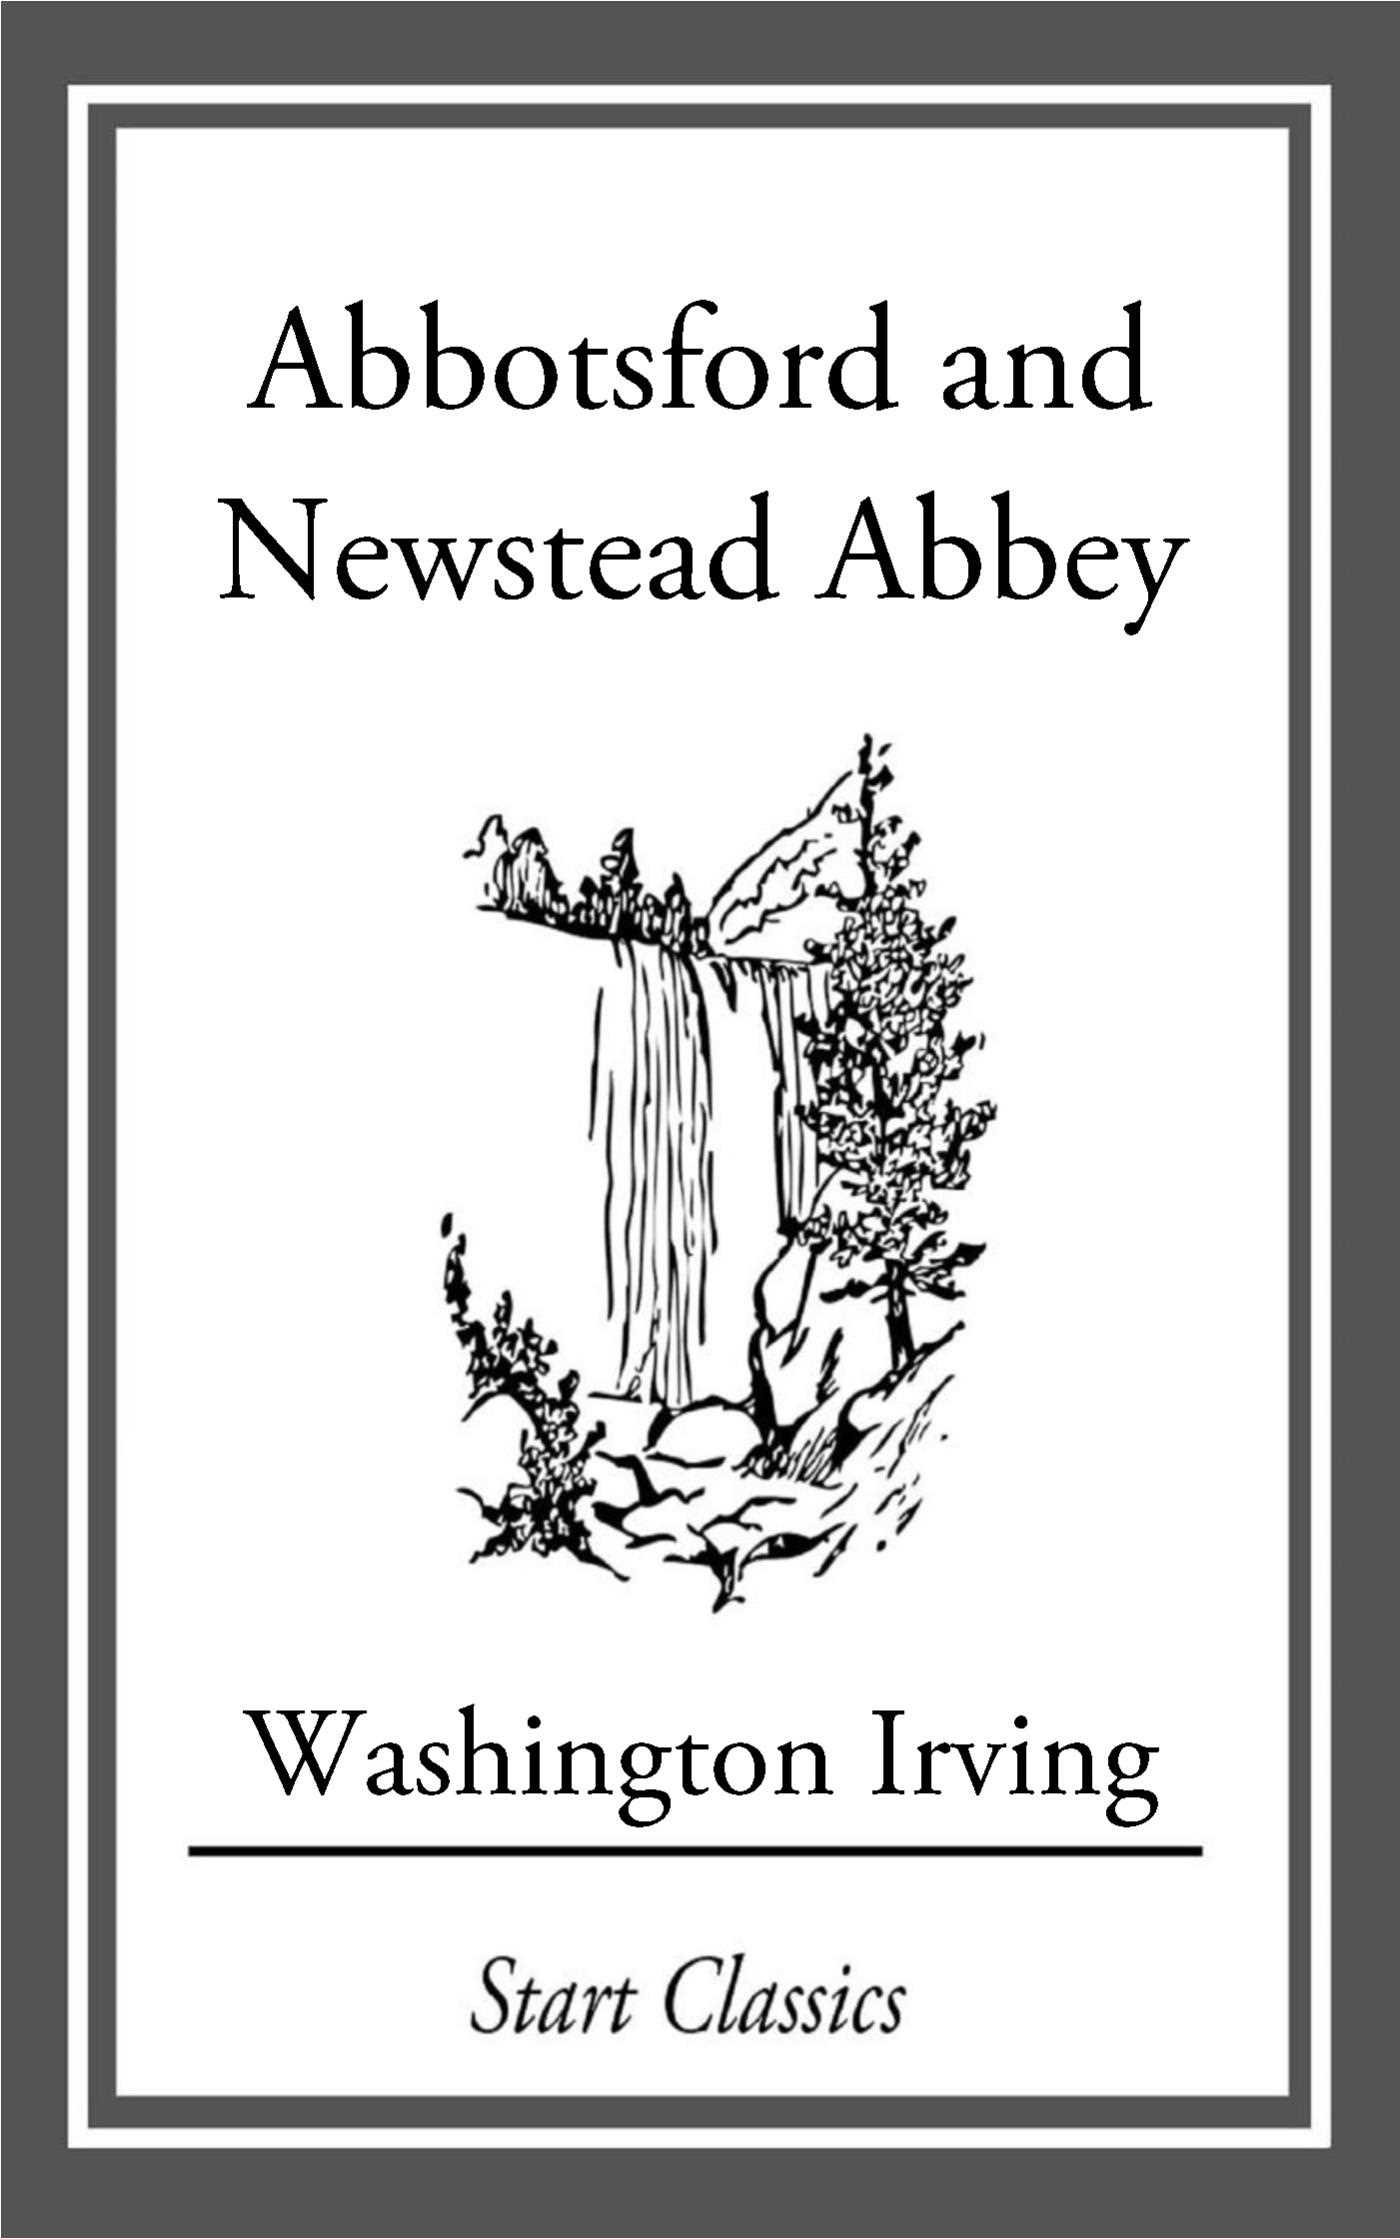 a biography of washington irving one of the first american writers to earn acclaim in europe Washington irving (april 3, 1783 – november 28, 1859) was an american short story writer, essayist, biographer, historian, and diplomat of the early 19th century.